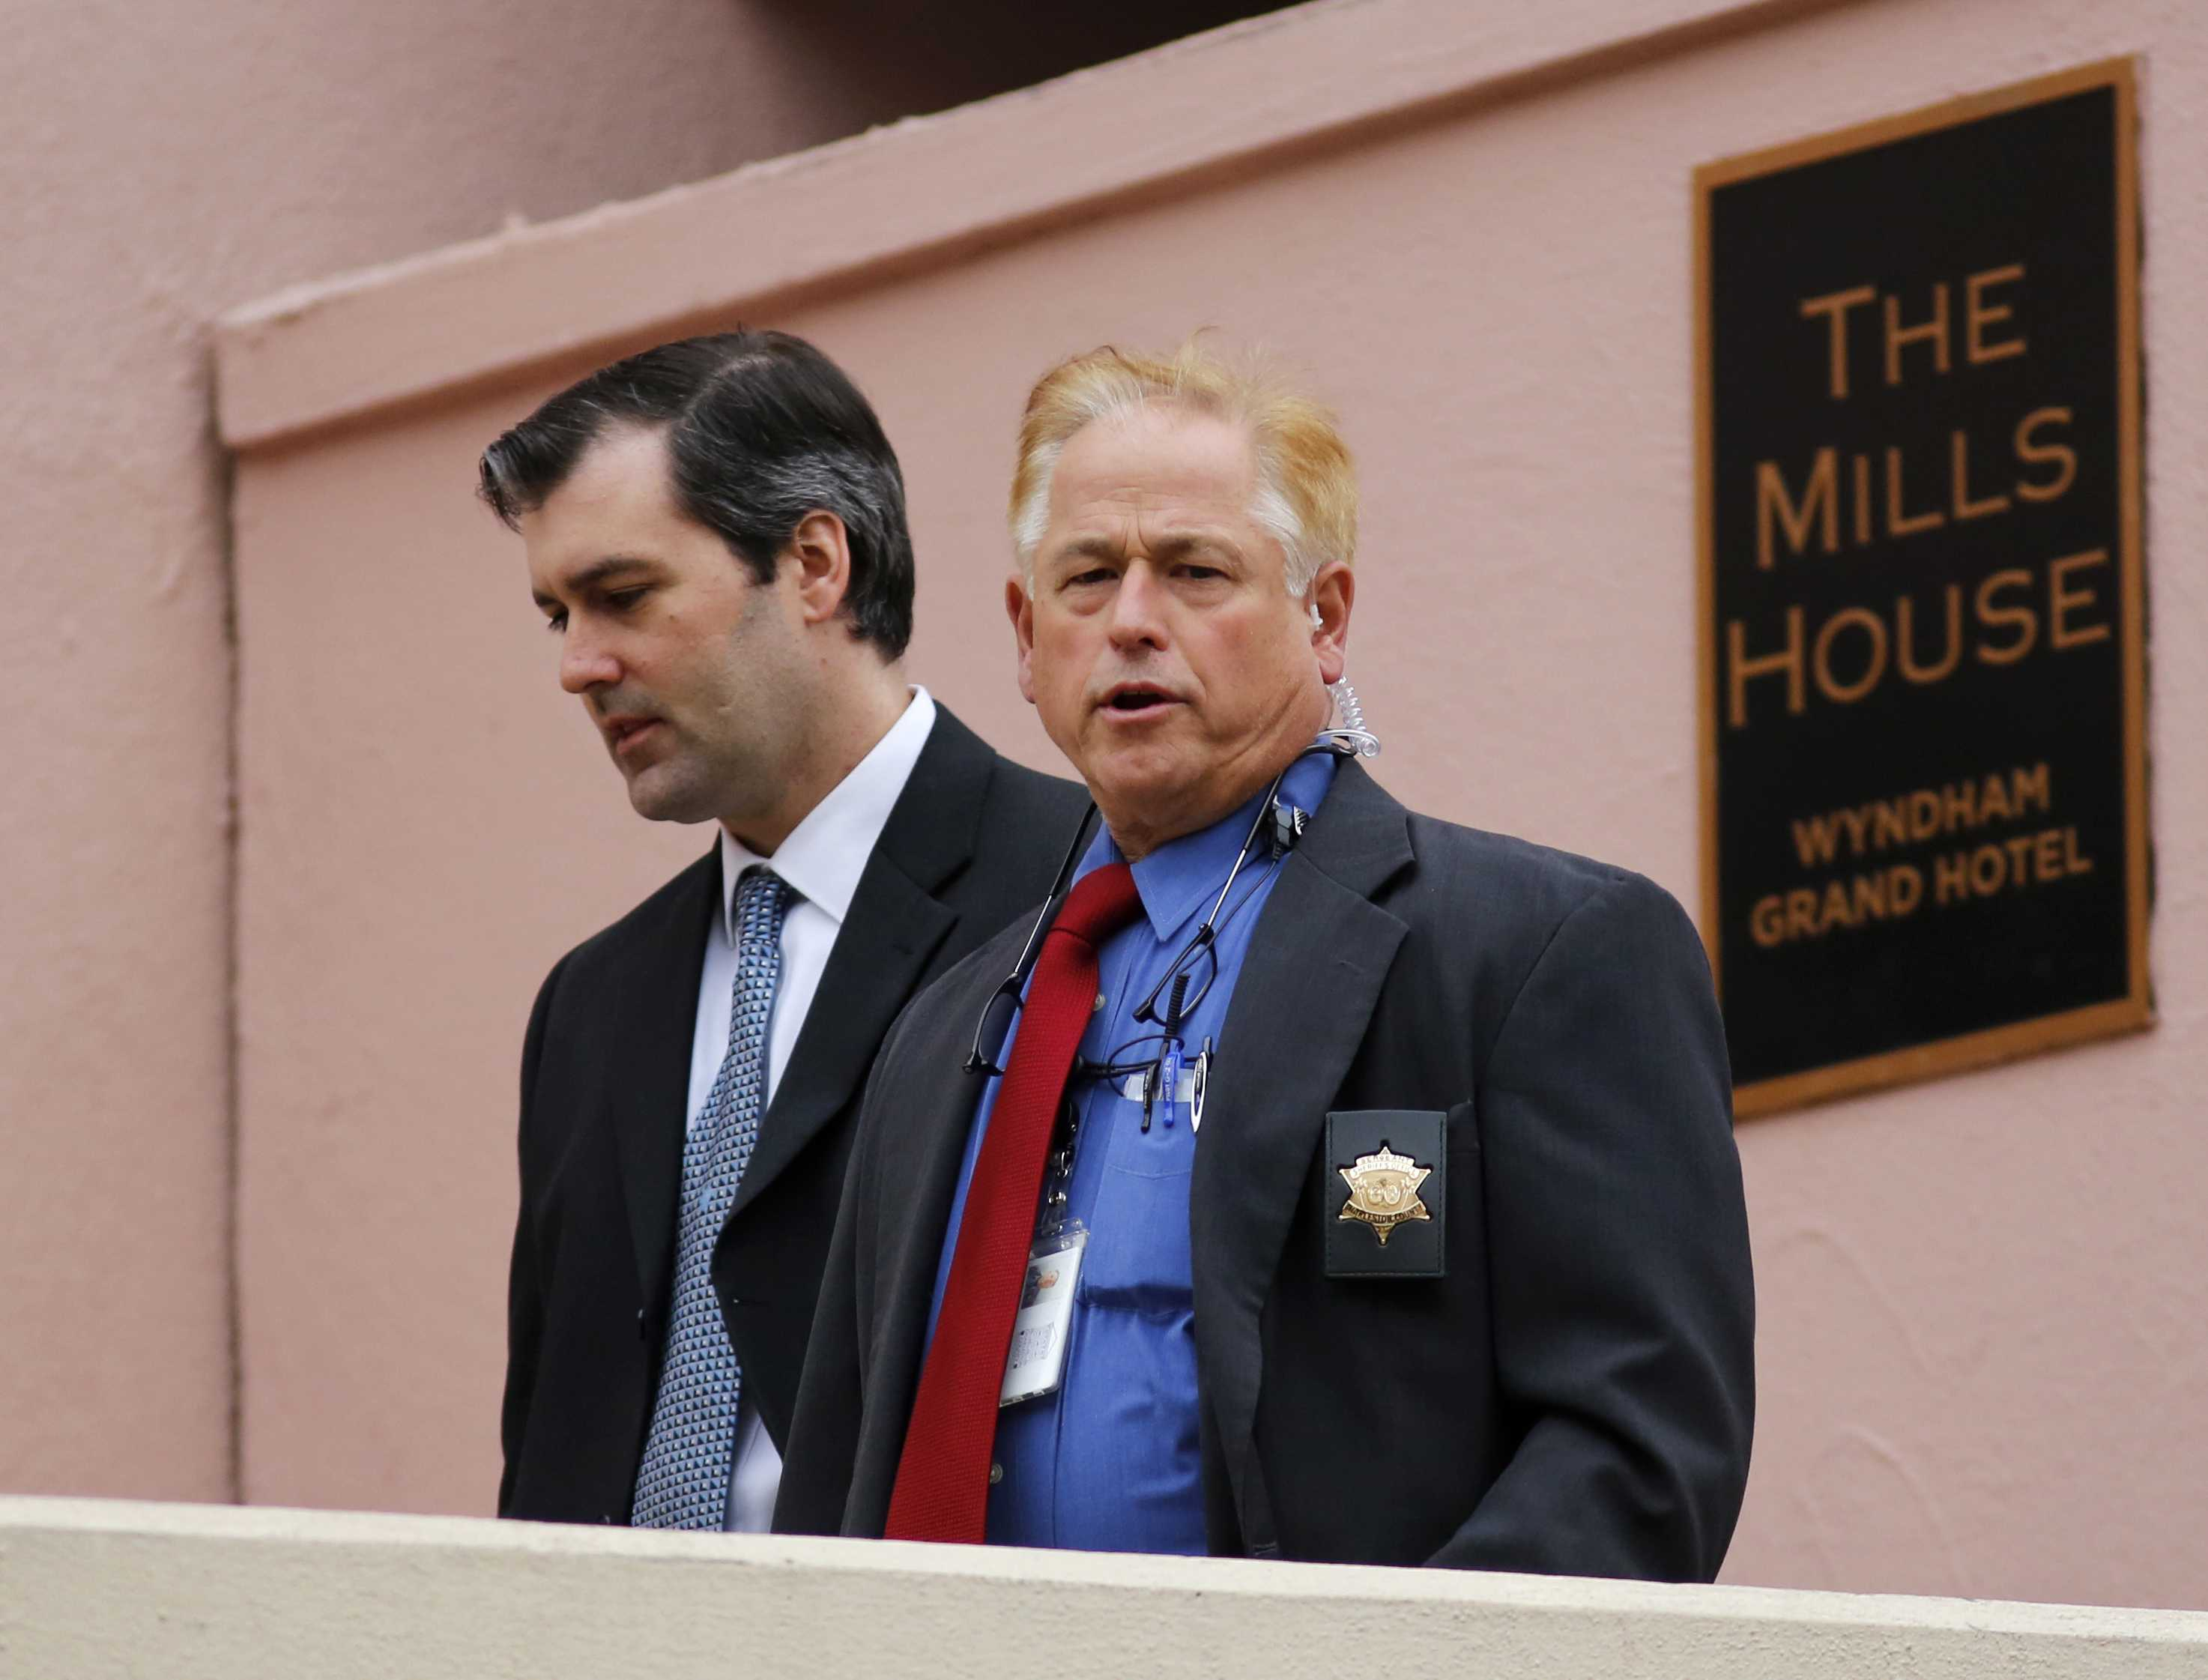 Mistrial Decided in Murder Trial of Officer Who Killed Walter Scott